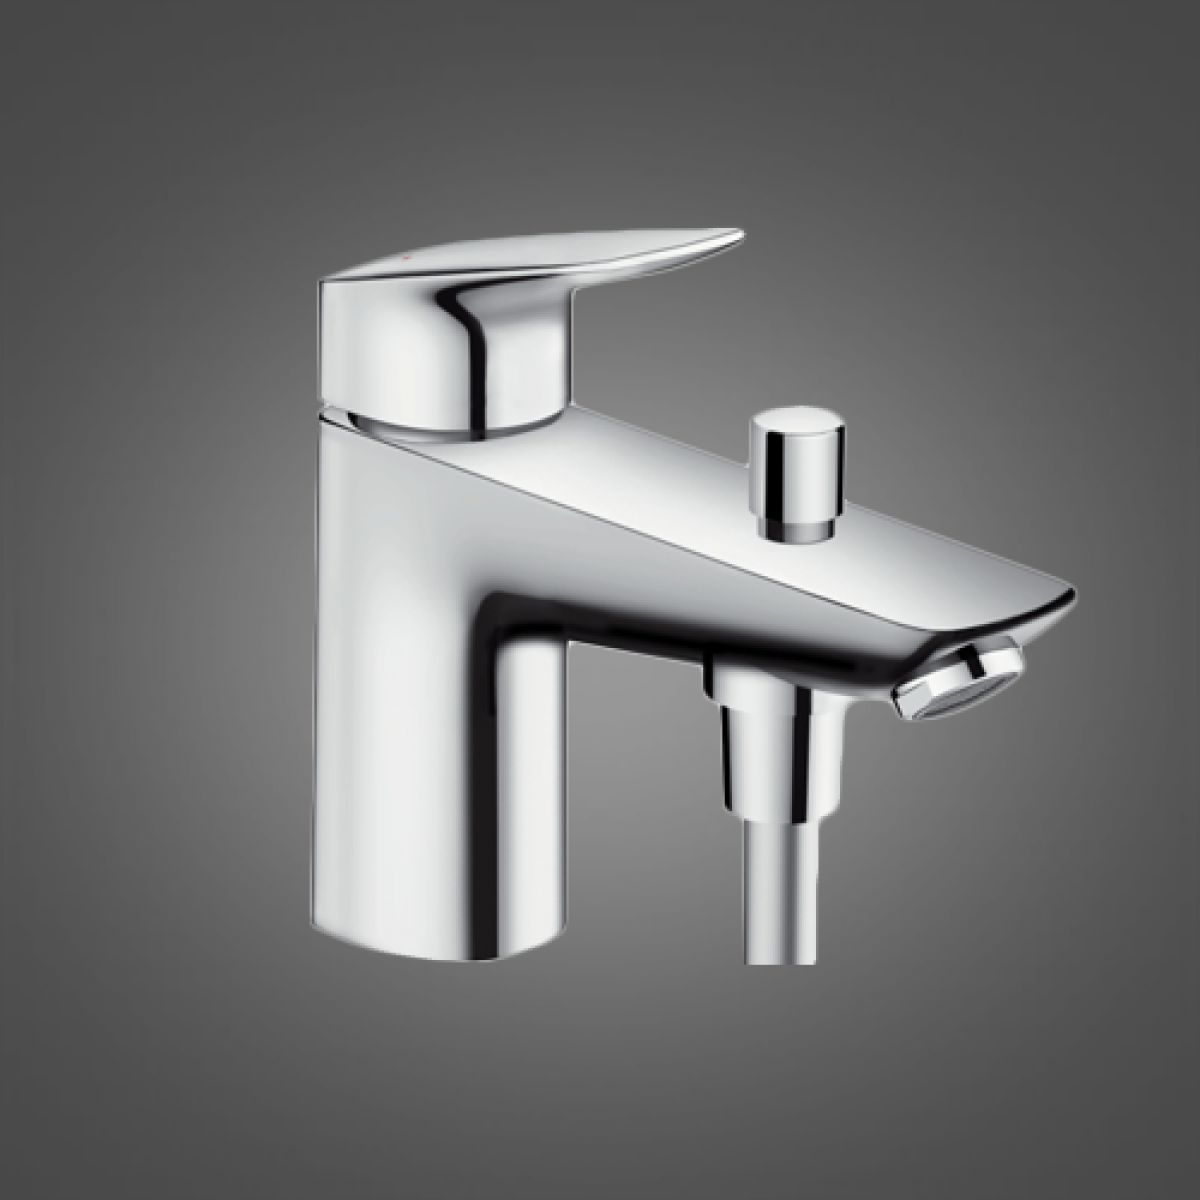 Hans Grohe Hansgrohe Logis Single Lever Bath Shower Mixer Uk Bathrooms